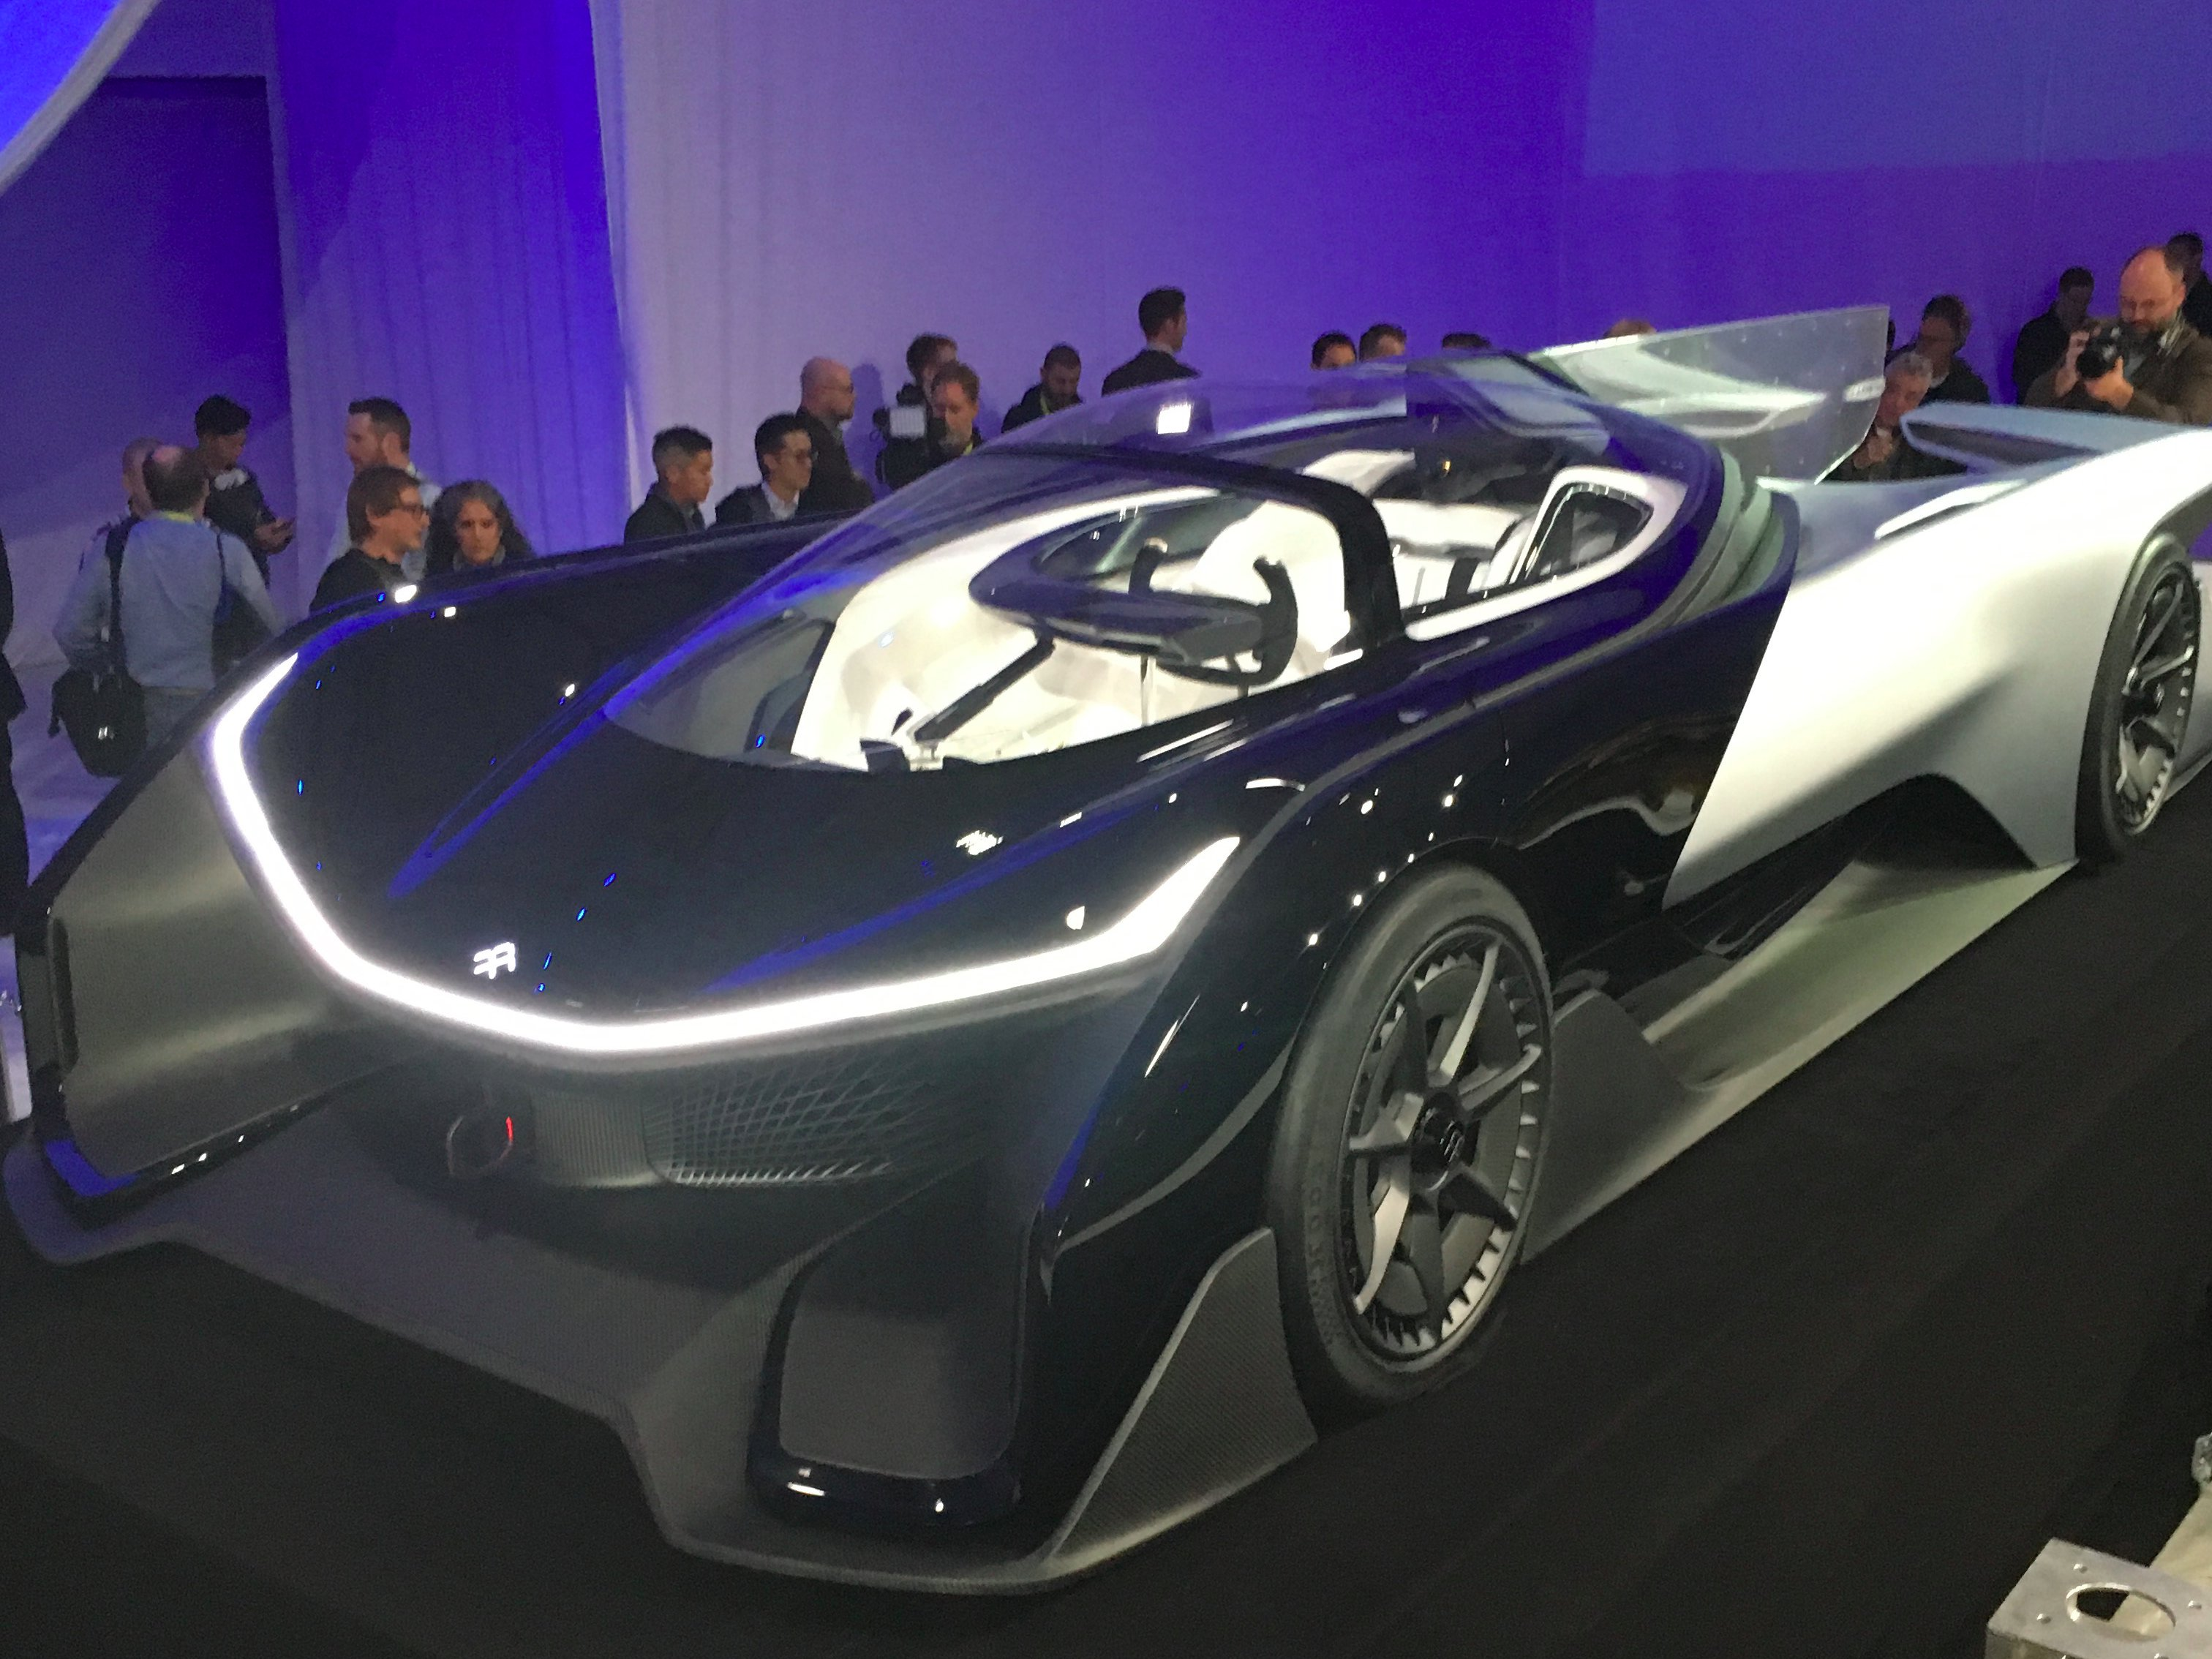 Future Of The Car: FFZERO1 Faraday Future Concept Car